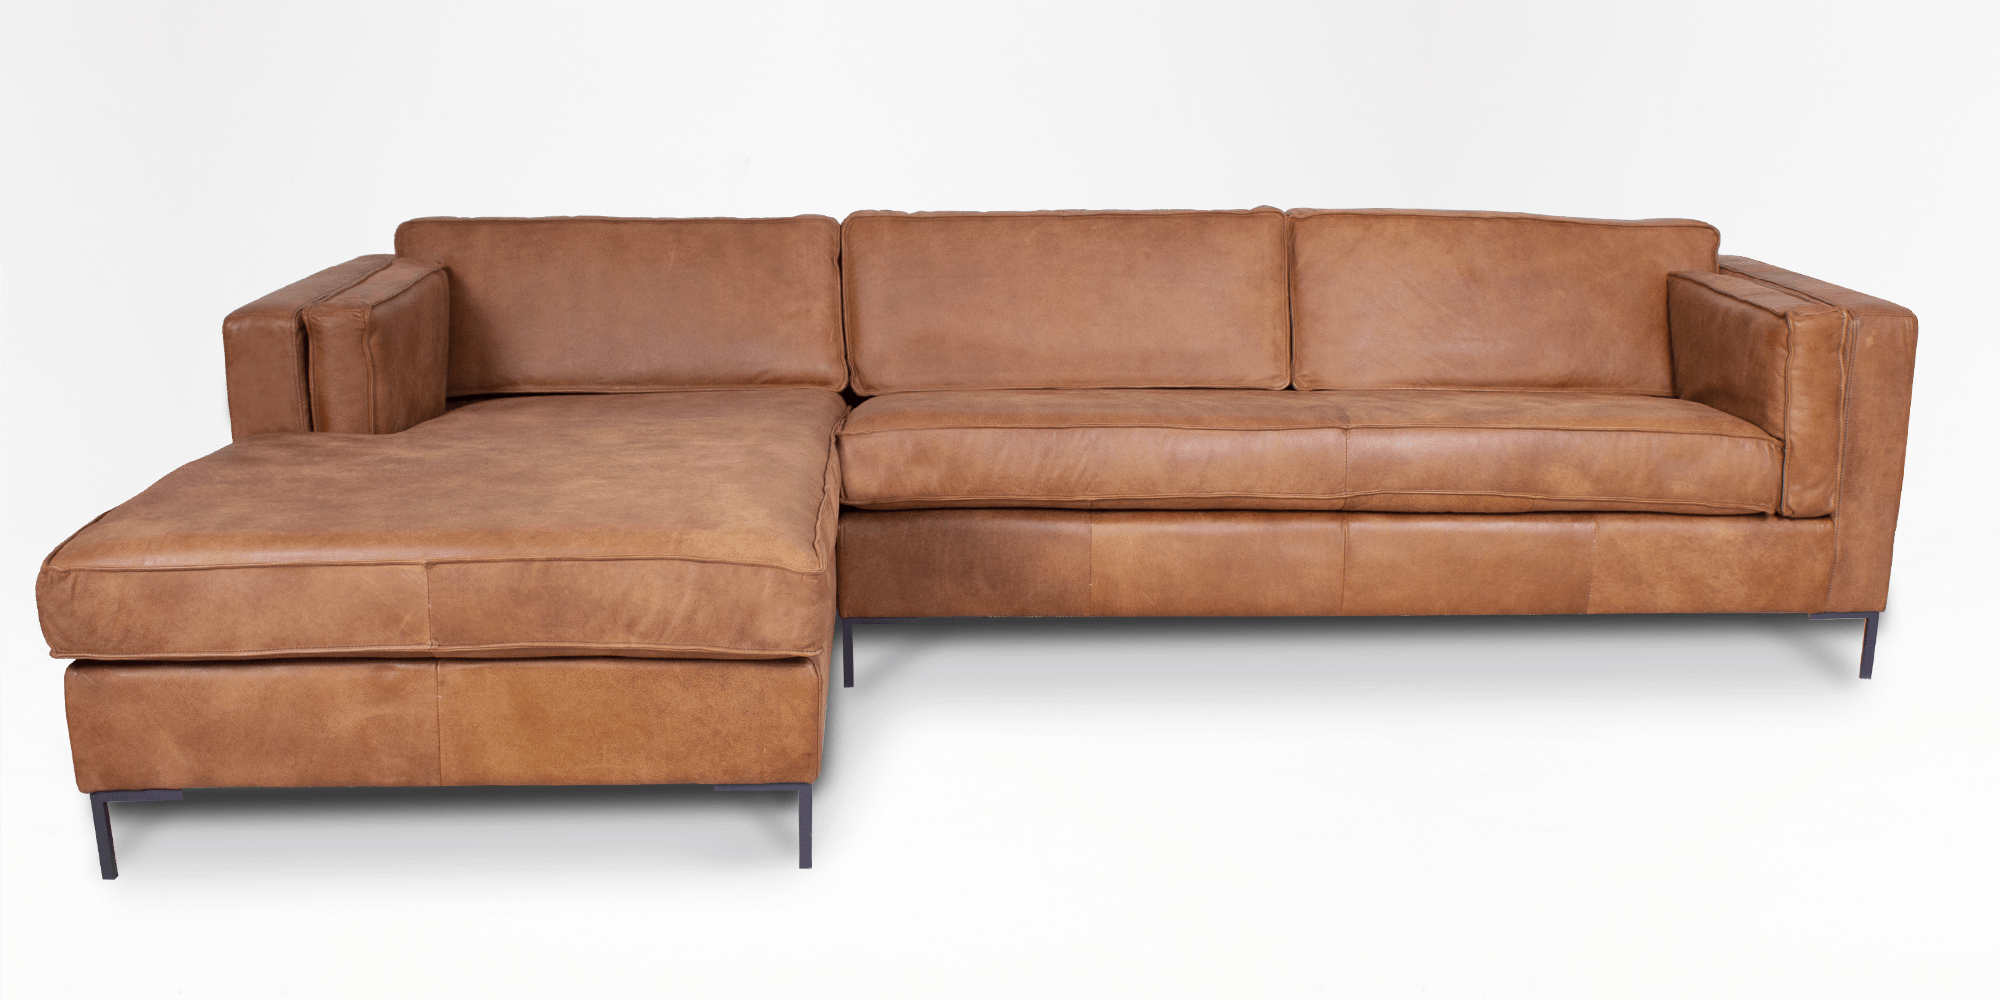 Haskell Leather Left Slouch 100 Leather Couches Shop By Type Couch Studio Coricraft Couch Styling Couch Shopping Living Room Leather